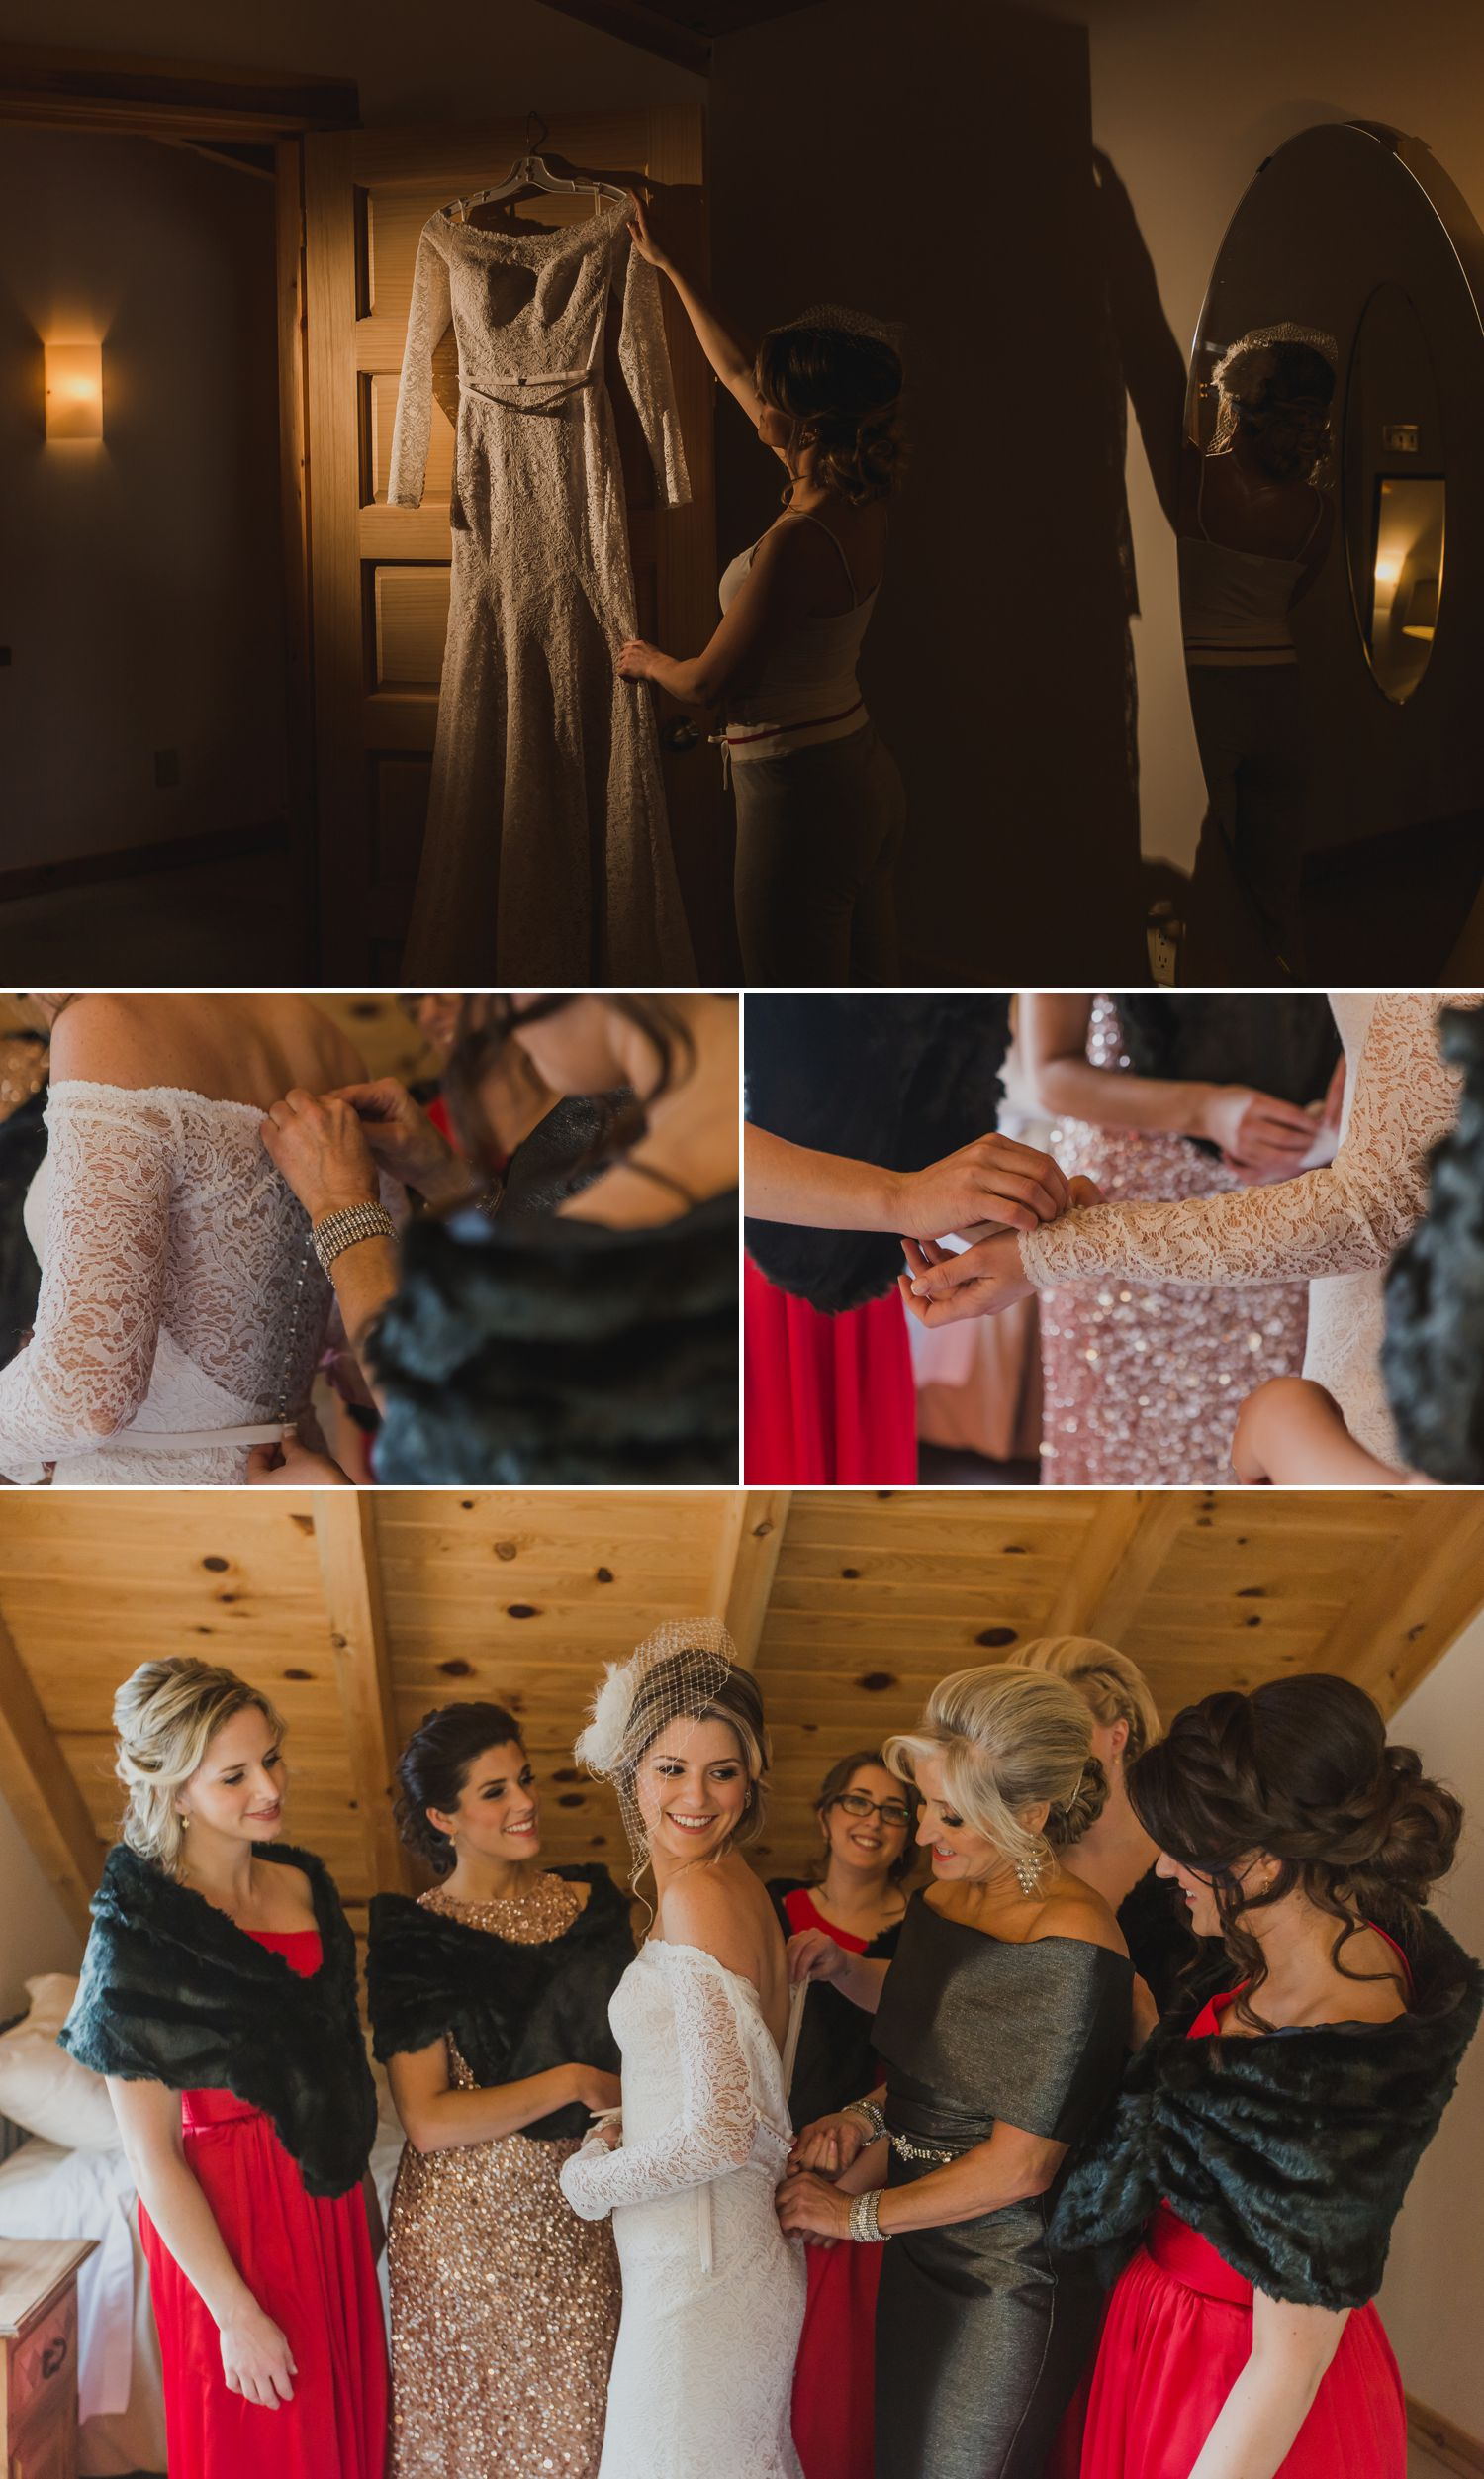 The bride with her bridesmaids and family getting ready at the Le Belvedere Guesthouse